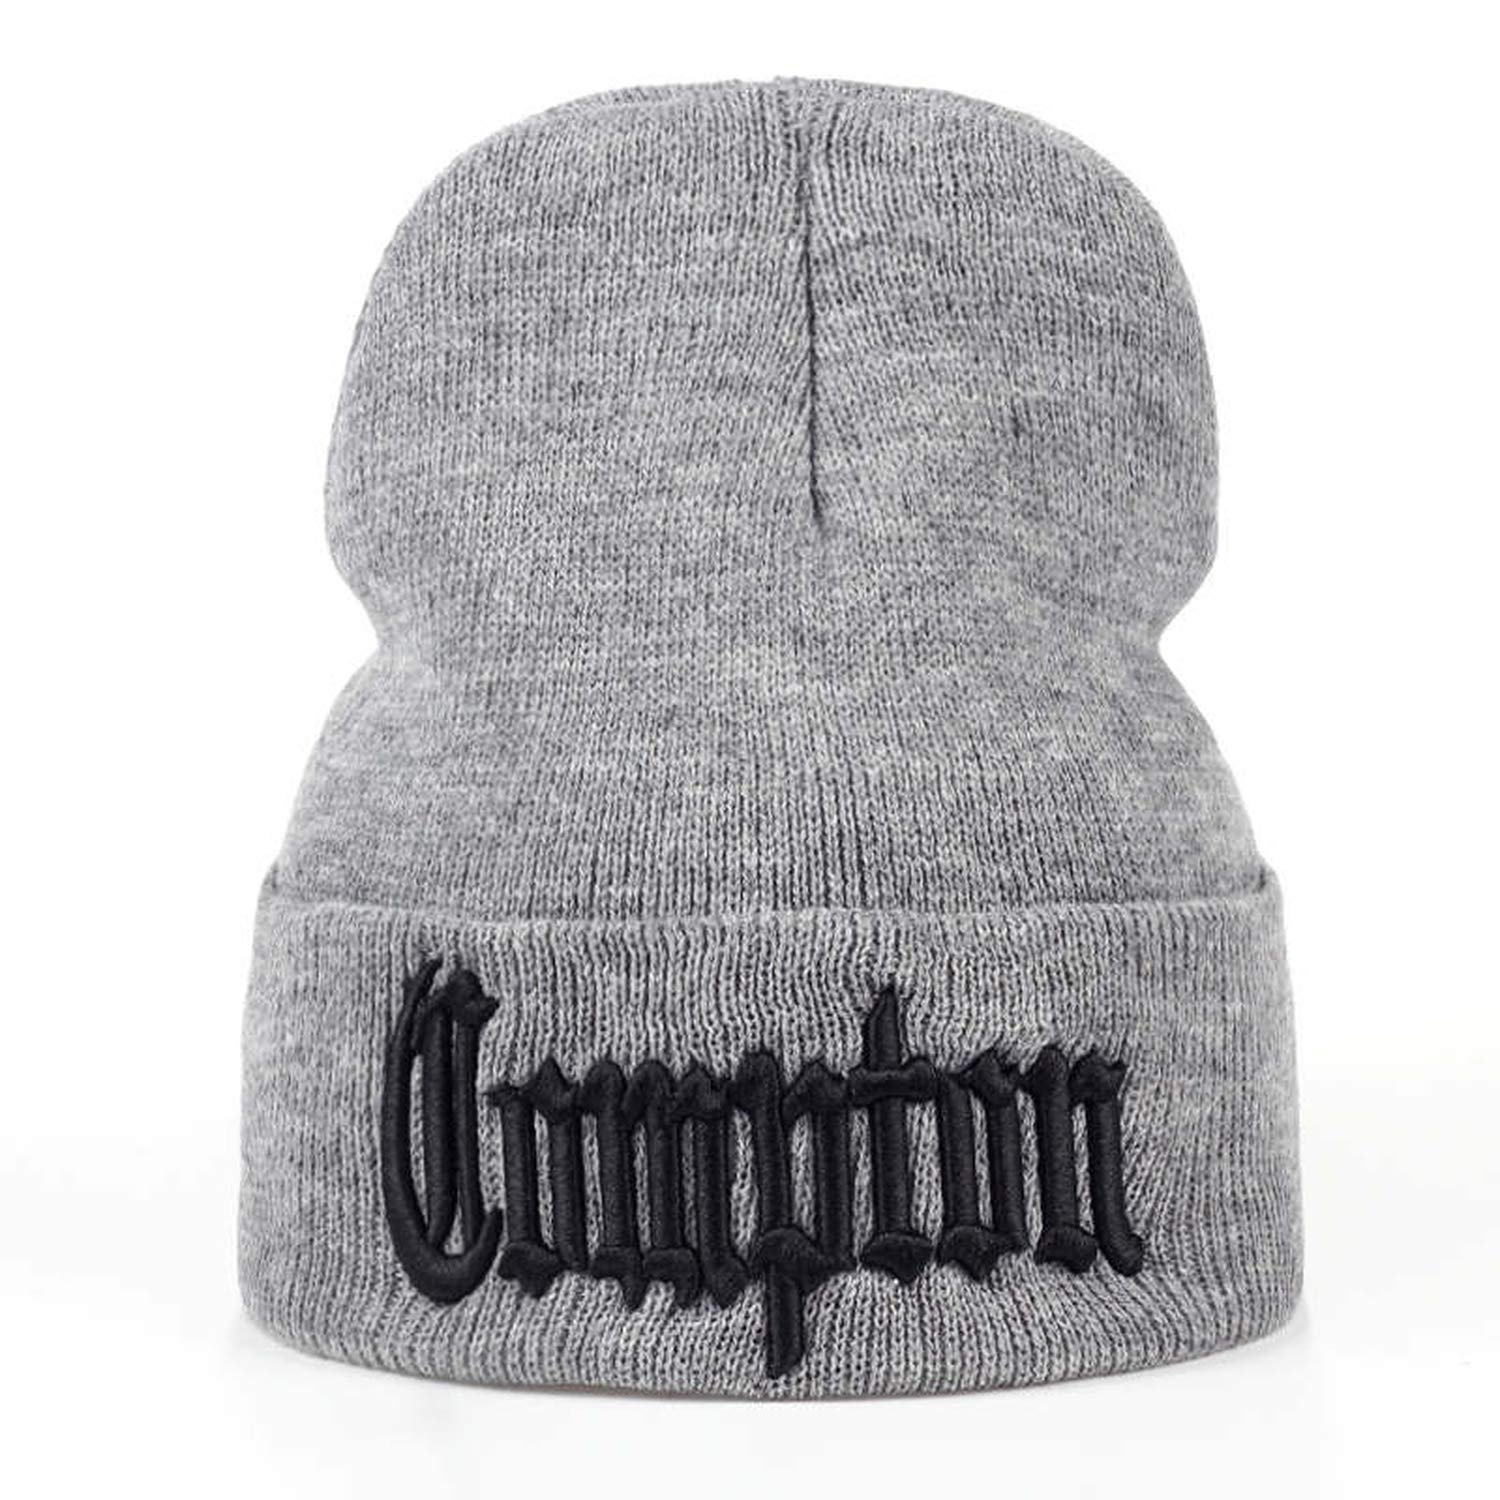 Winter Warm Fashion Beanies Knitted Bonnet Skullies Caps Hip Hop Gorros Knit Hat